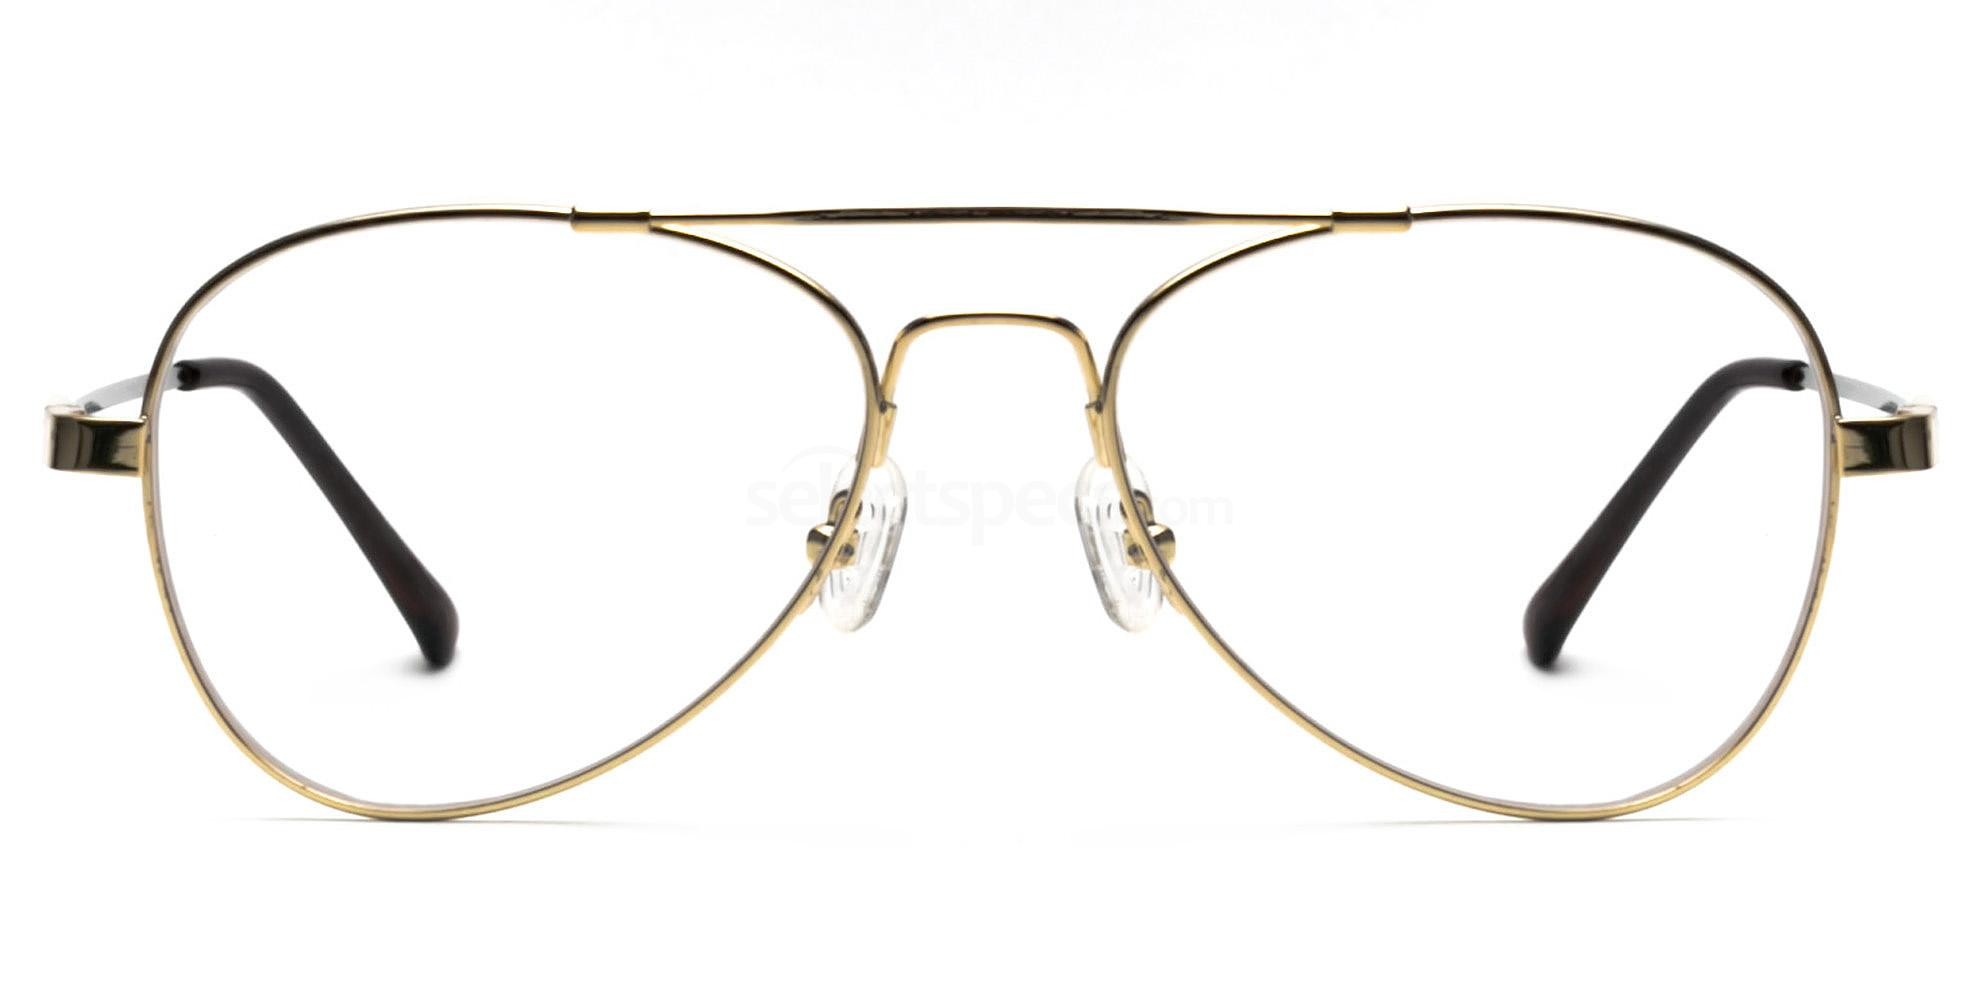 aviator frame glasses  Aviator Prescription Glasses: The New Spectacle Trend